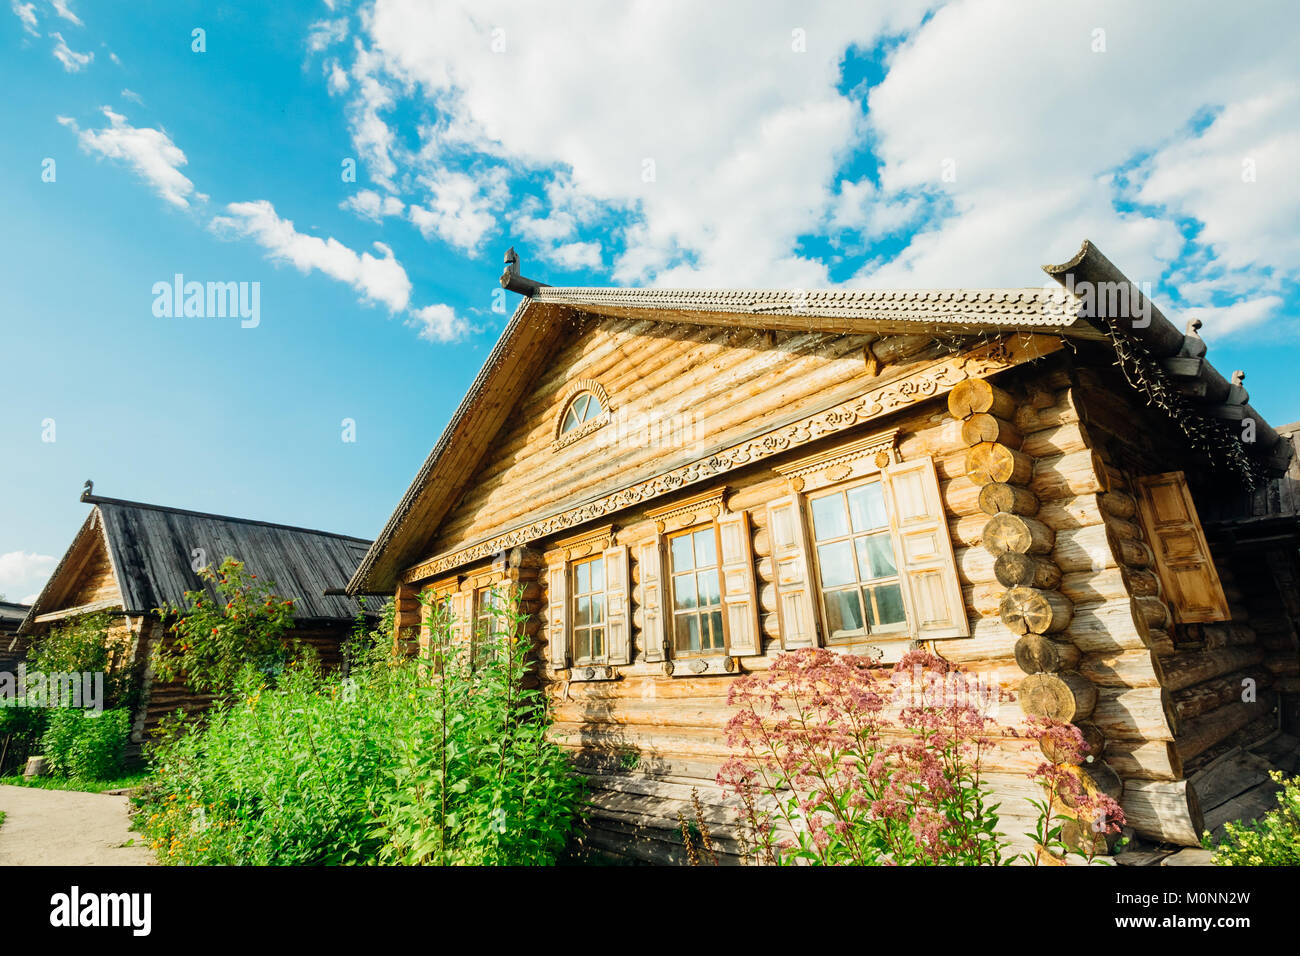 Wooden hut Slavic type on a summer day against the blue bright sky with clouds - Stock Image